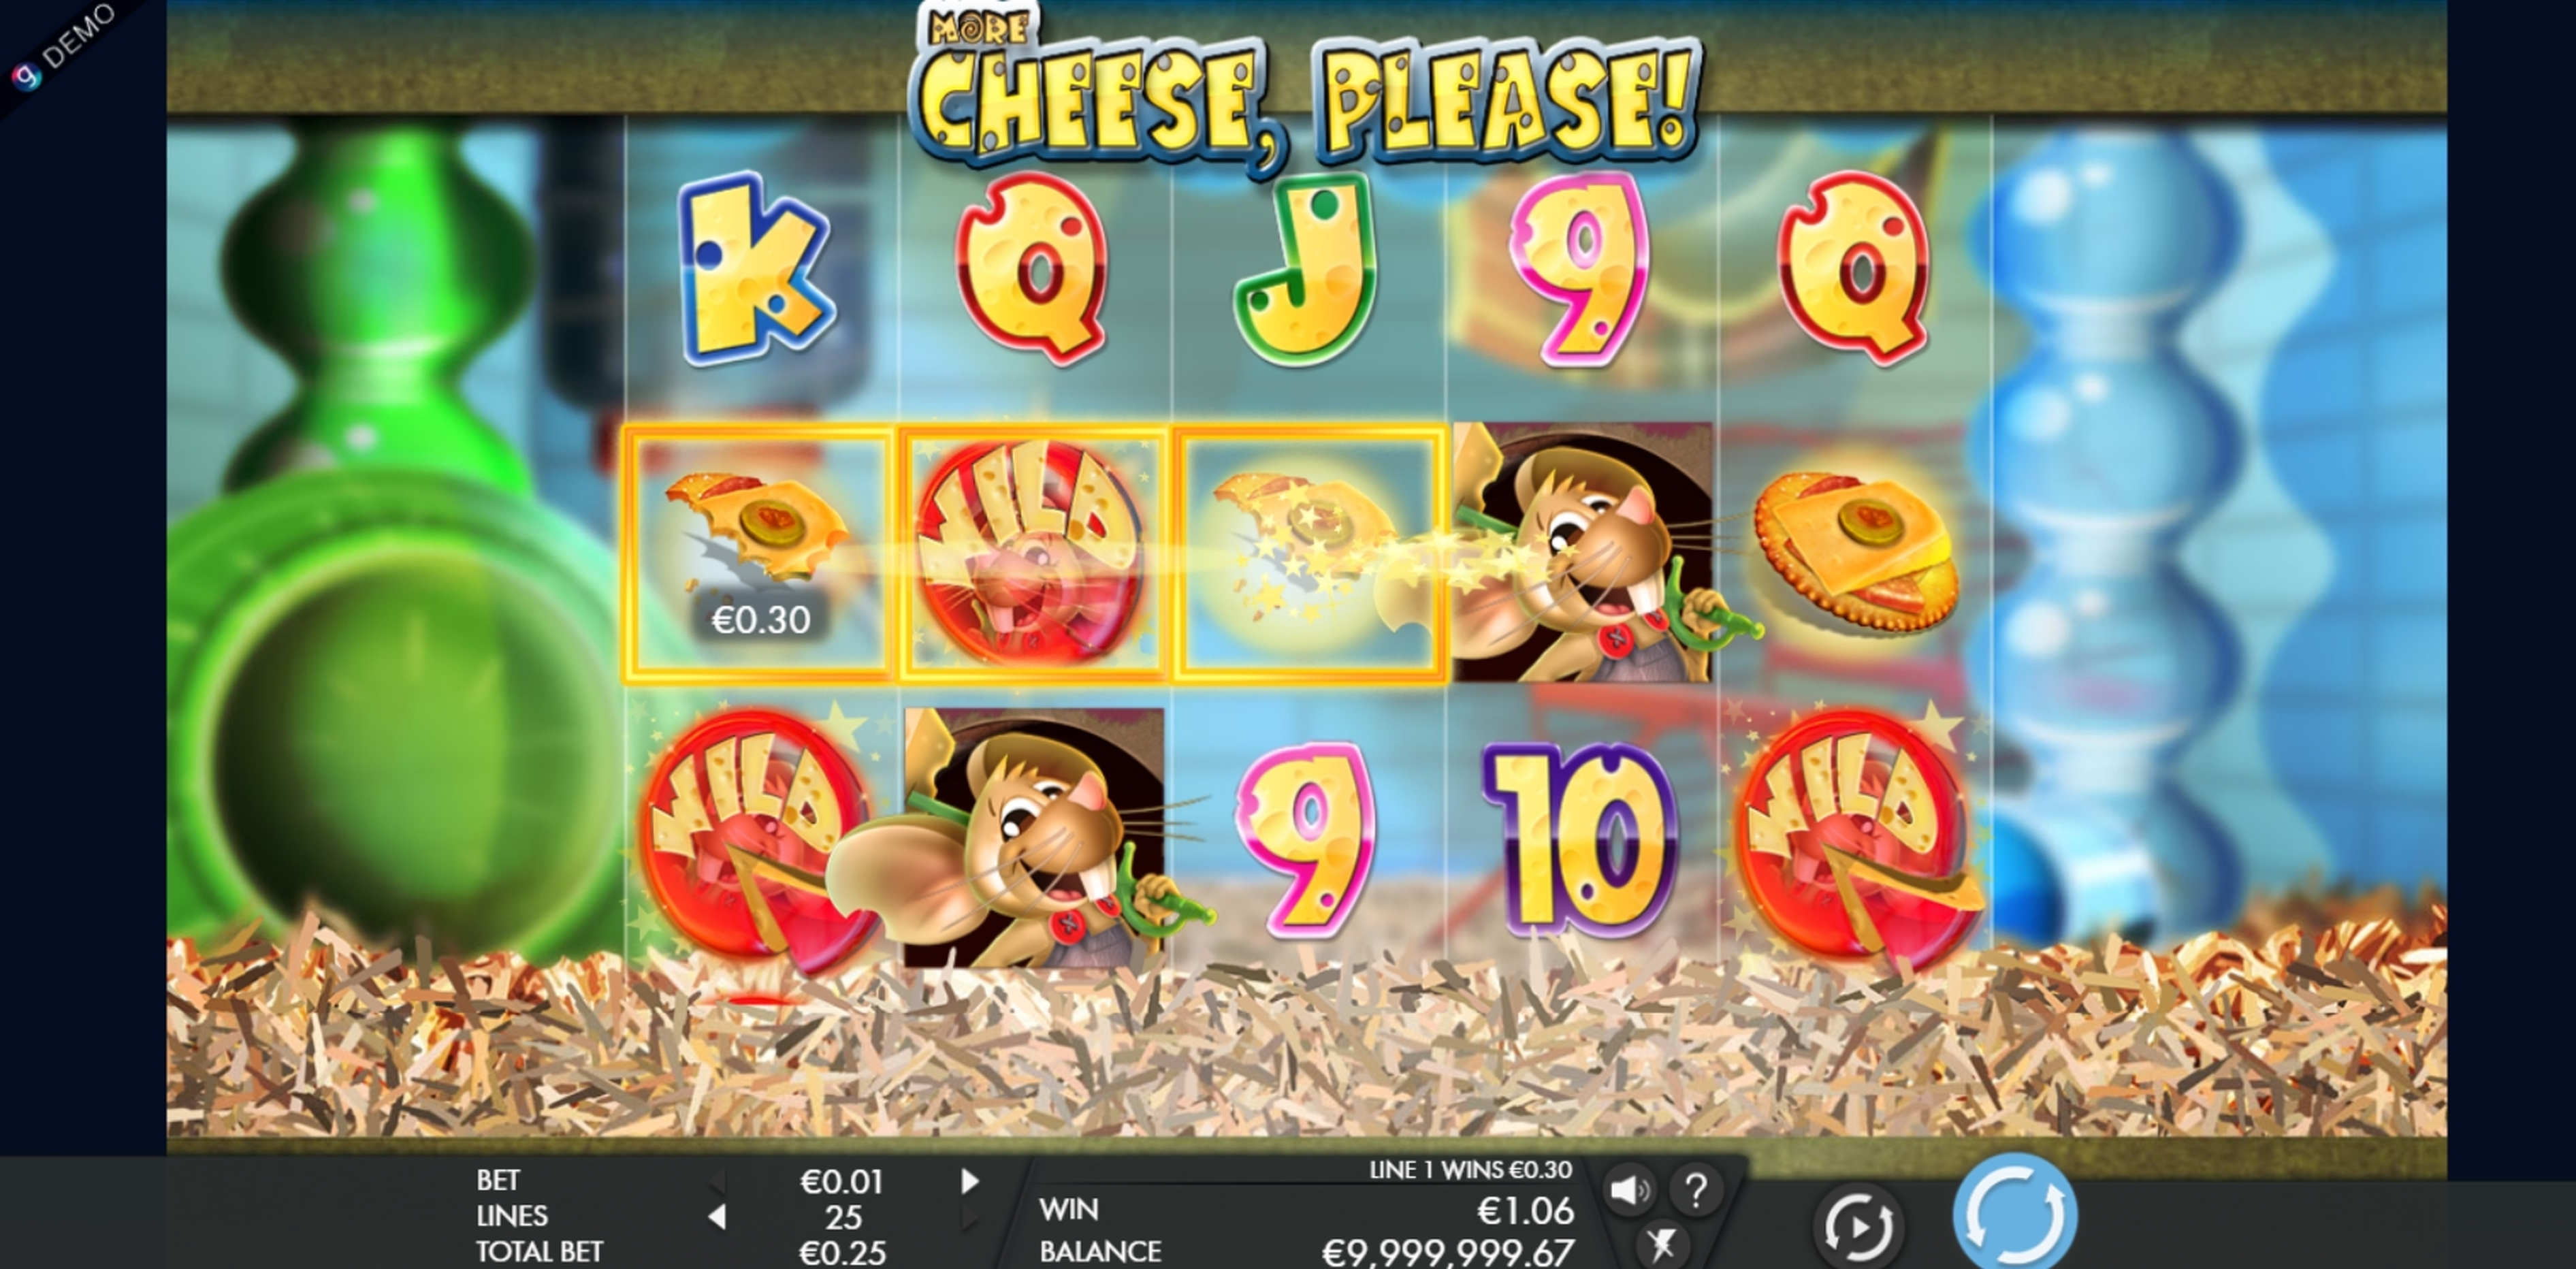 Win Money in More Cheese Please Free Slot Game by Genesis